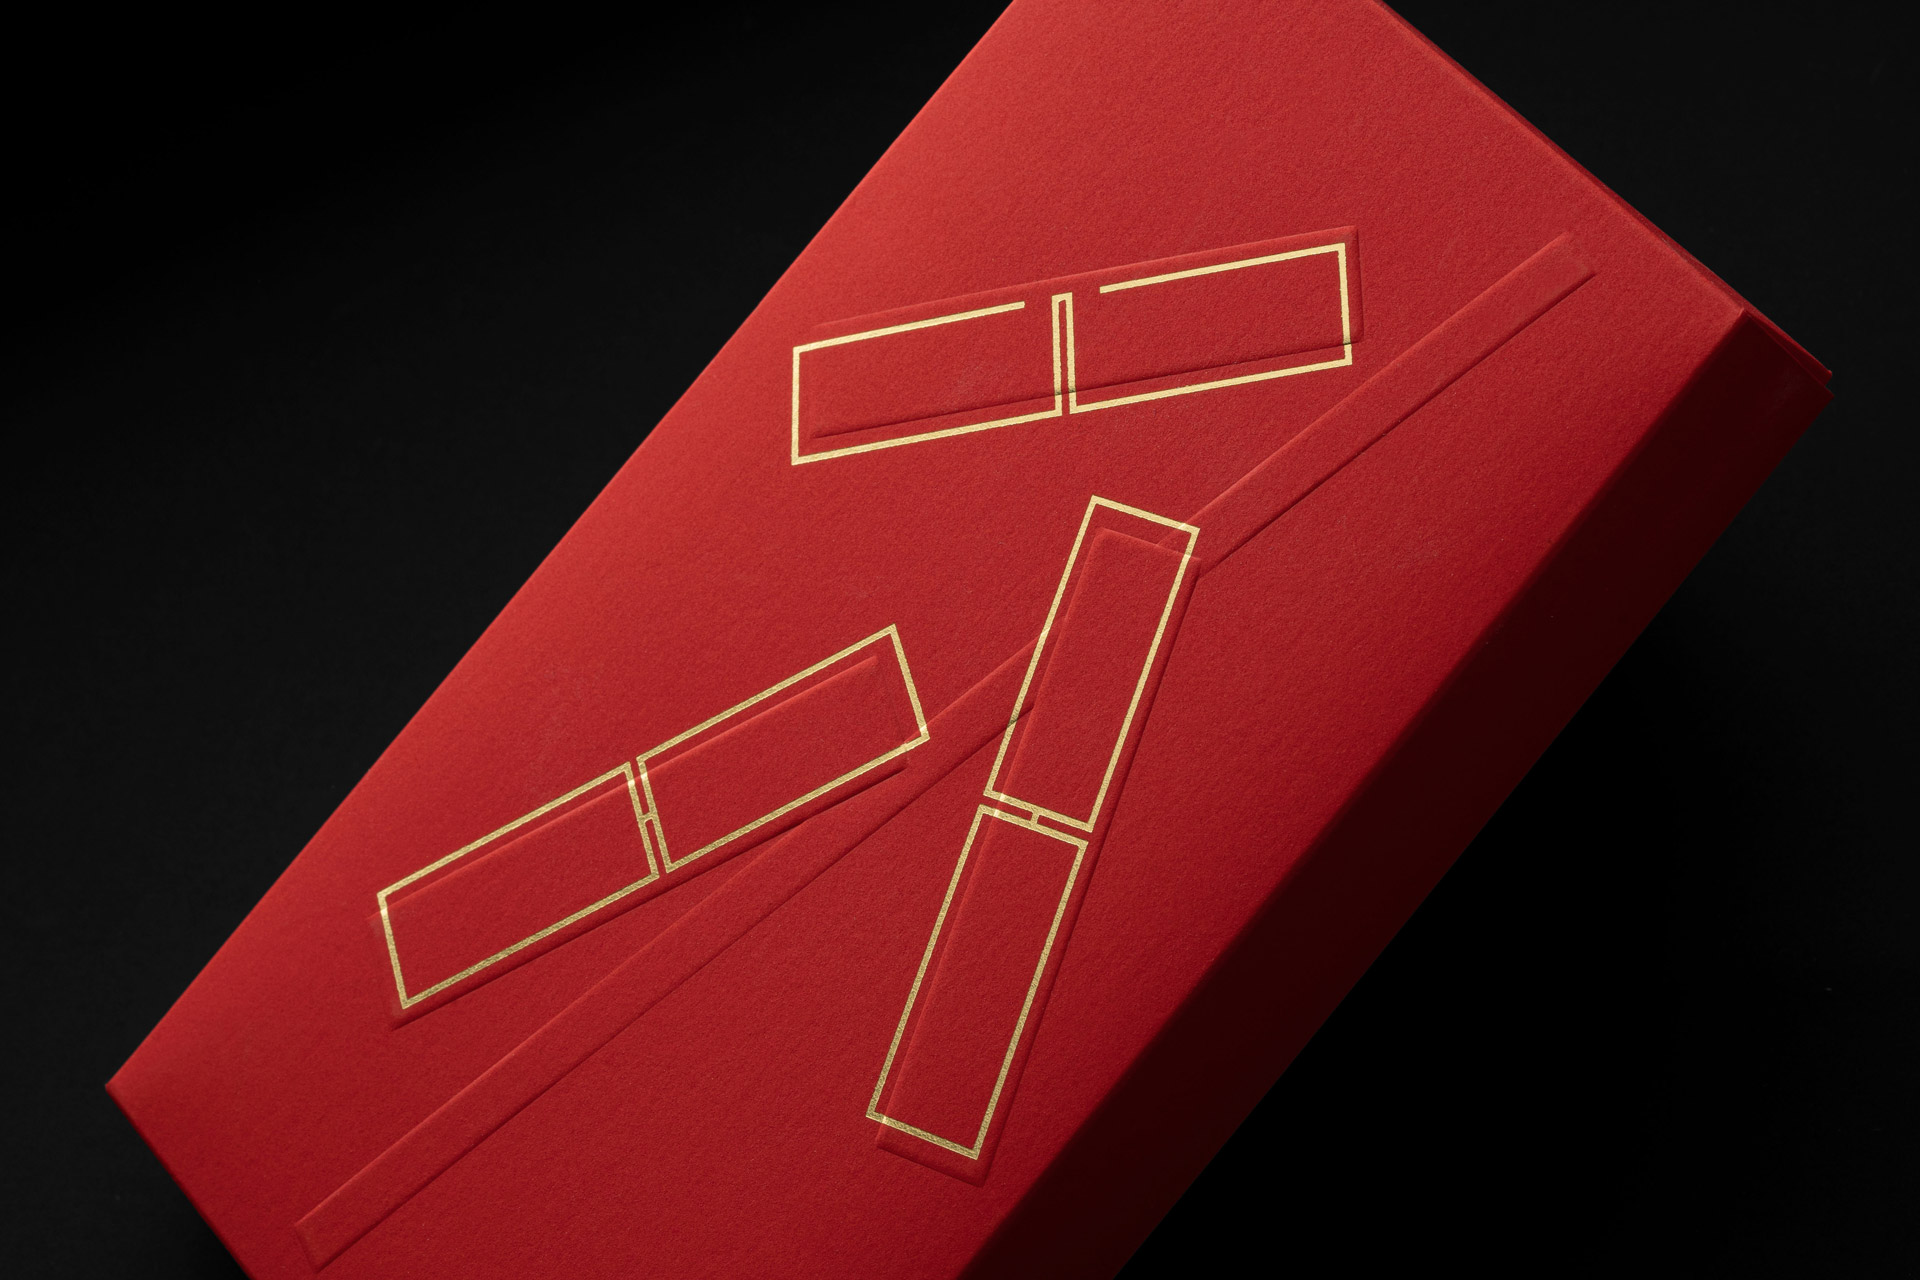 hkex-red-packet_03